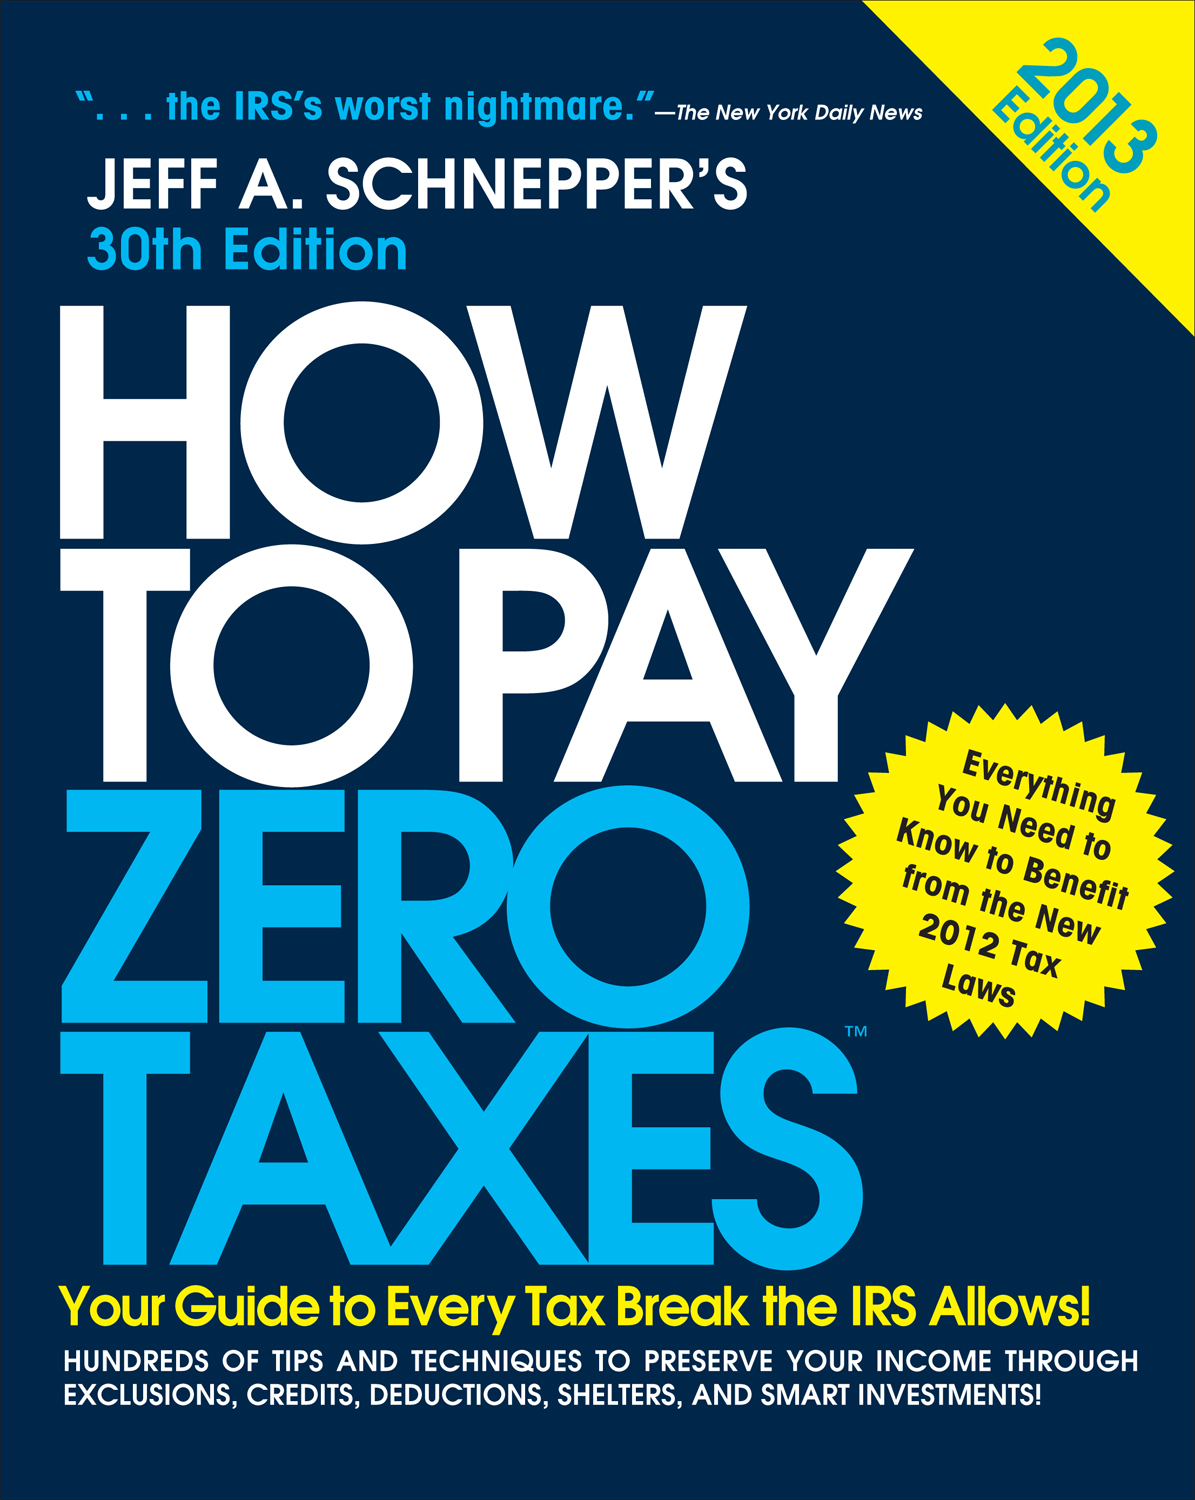 Download Ebook How to Pay Zero Taxes 2013: Your Guide to Every Tax Break the IRS Allows (30th ed.) by Jeff A. Schnepper Pdf